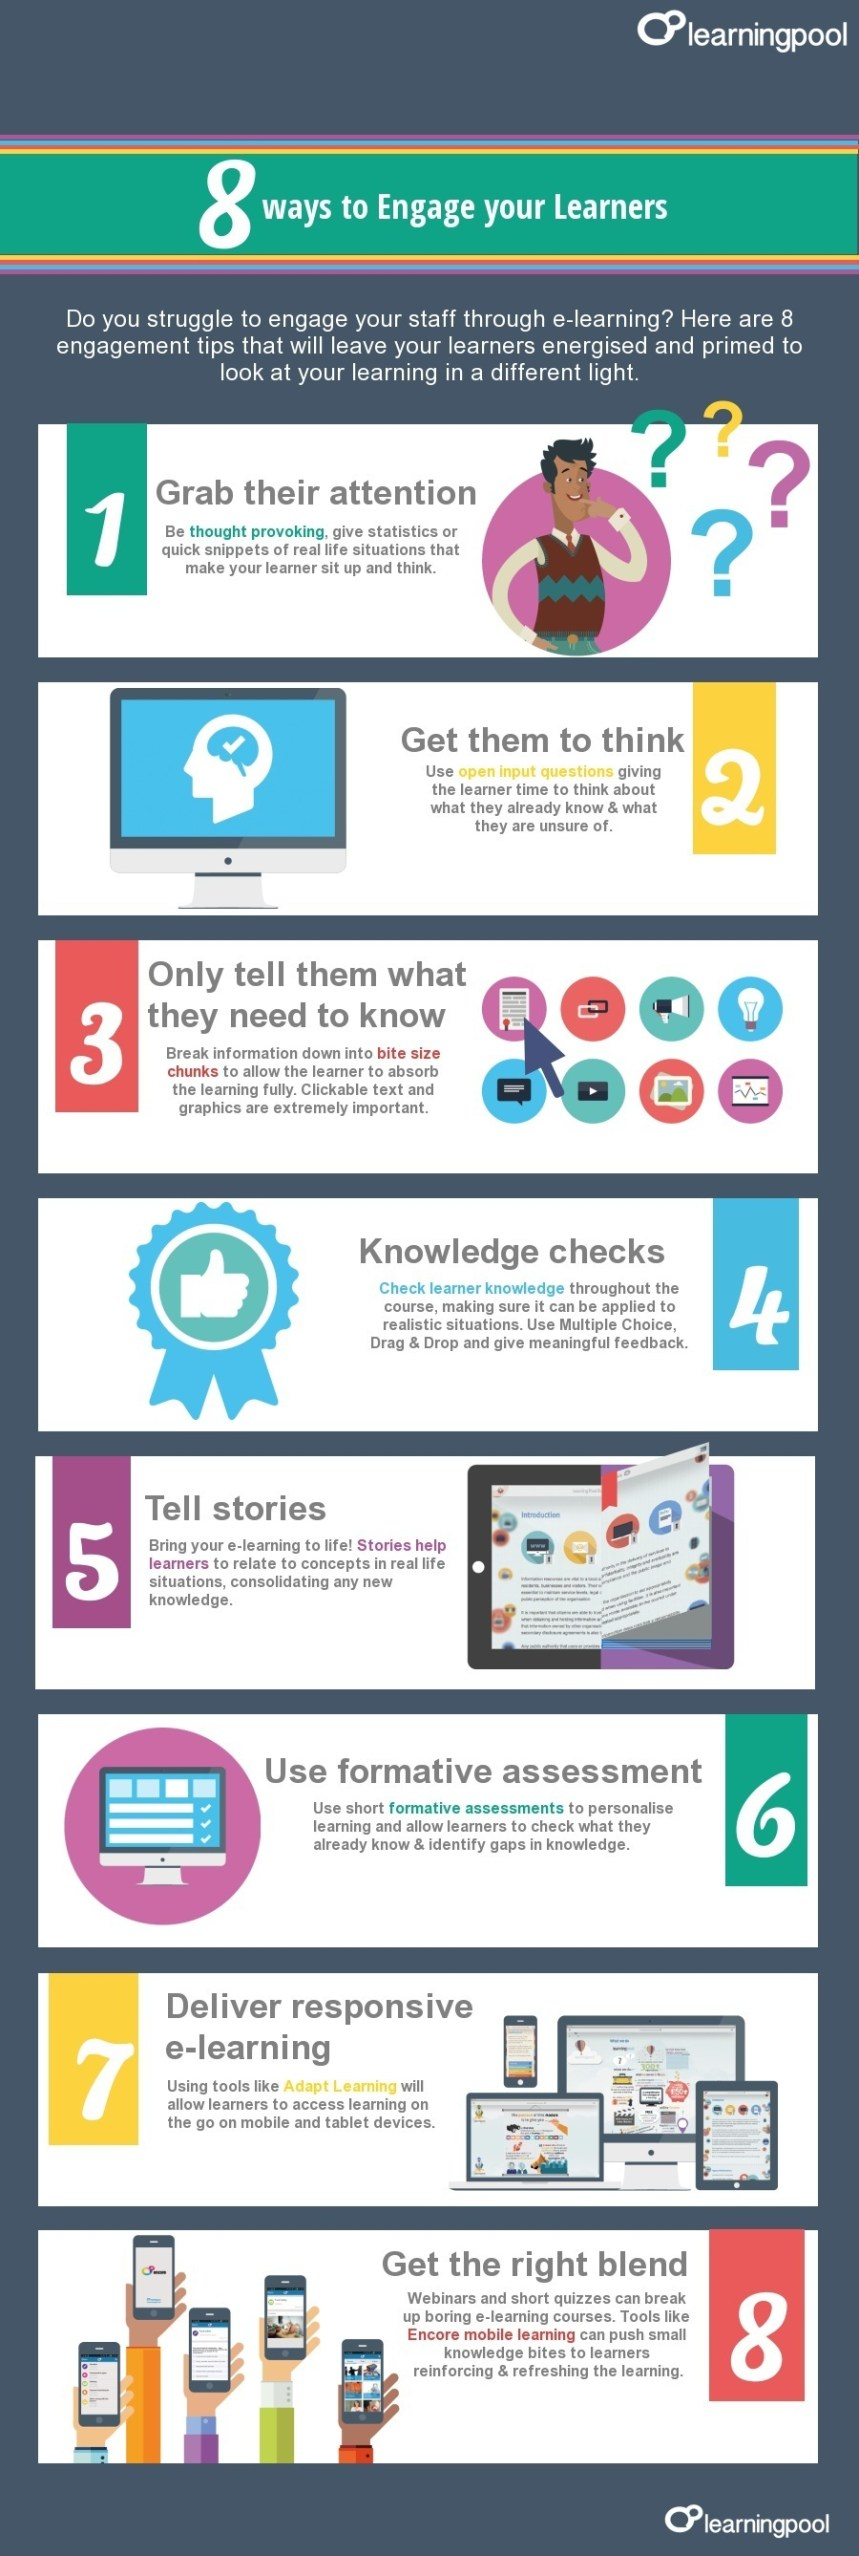 8 Ways to Engage eLearners Infographic